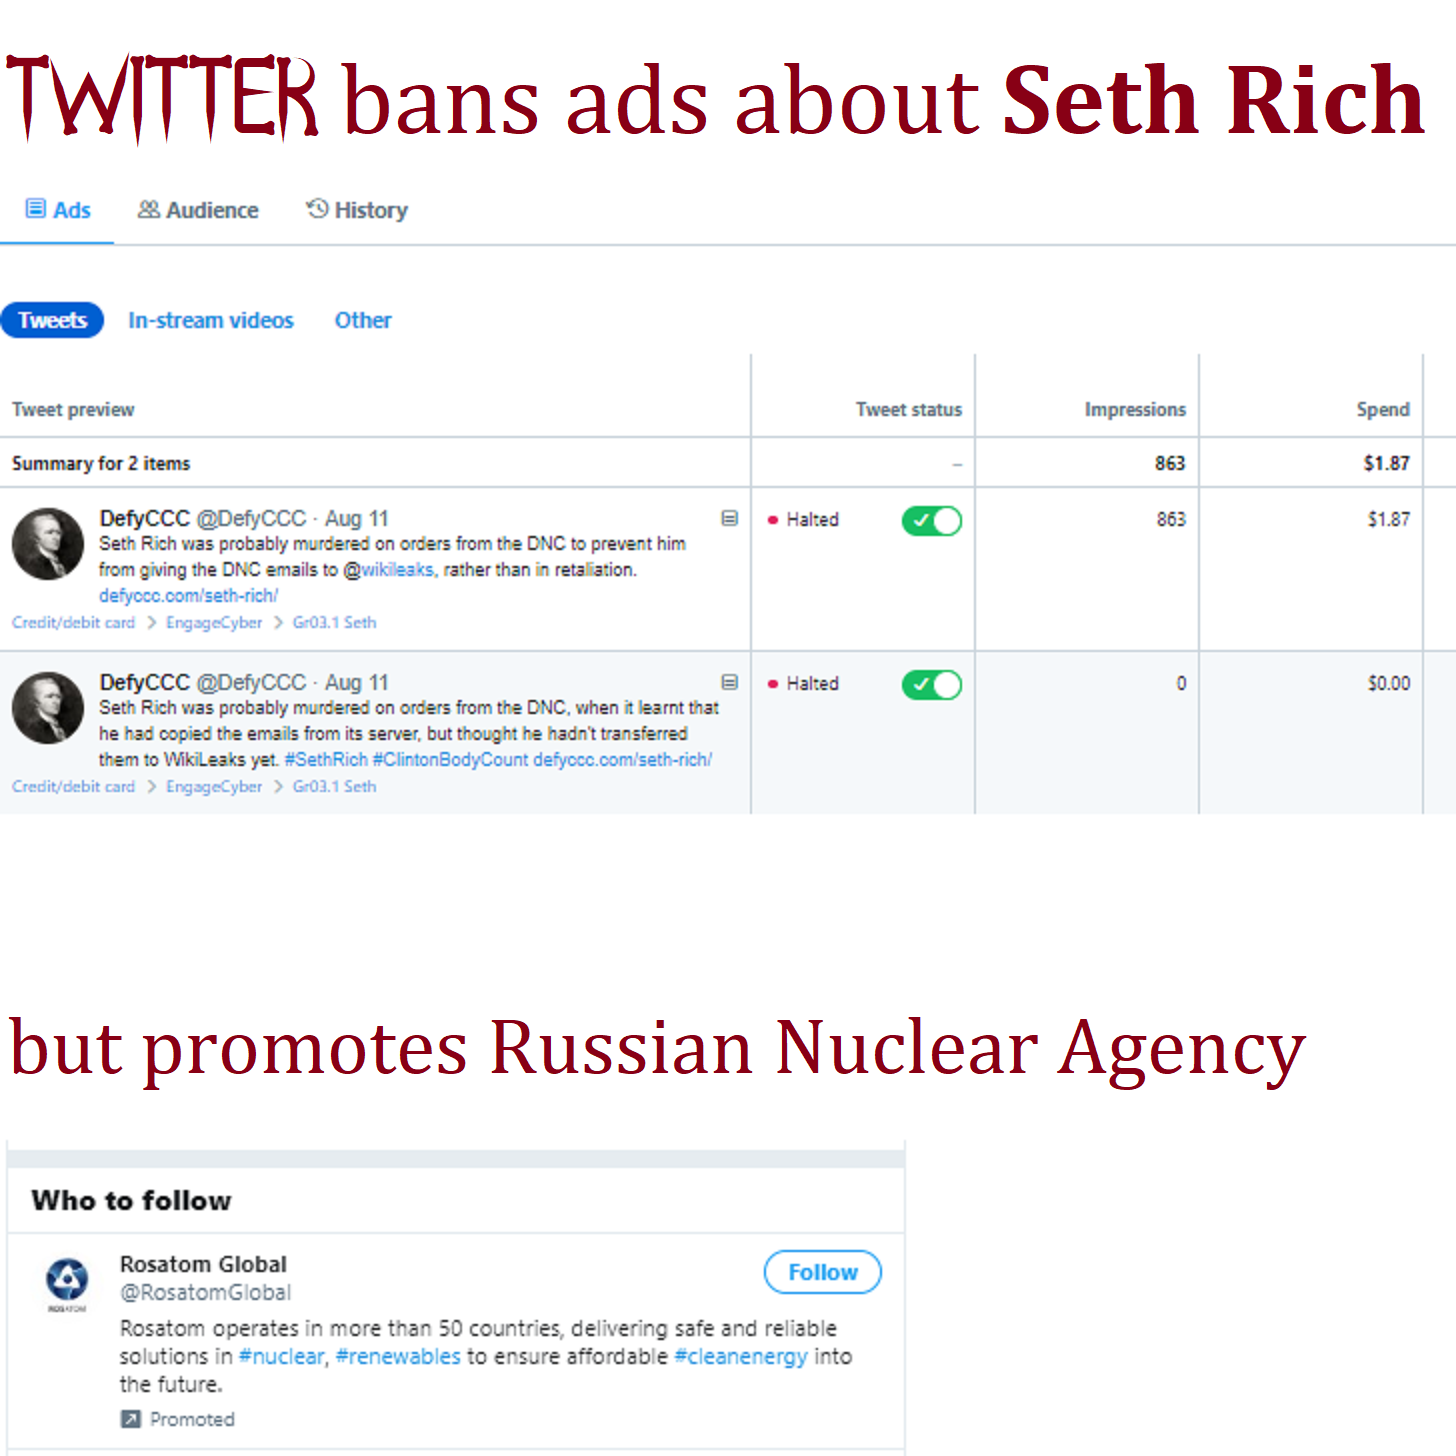 TWTR allows ads from RosAtom but bans American ads about Seth Rich